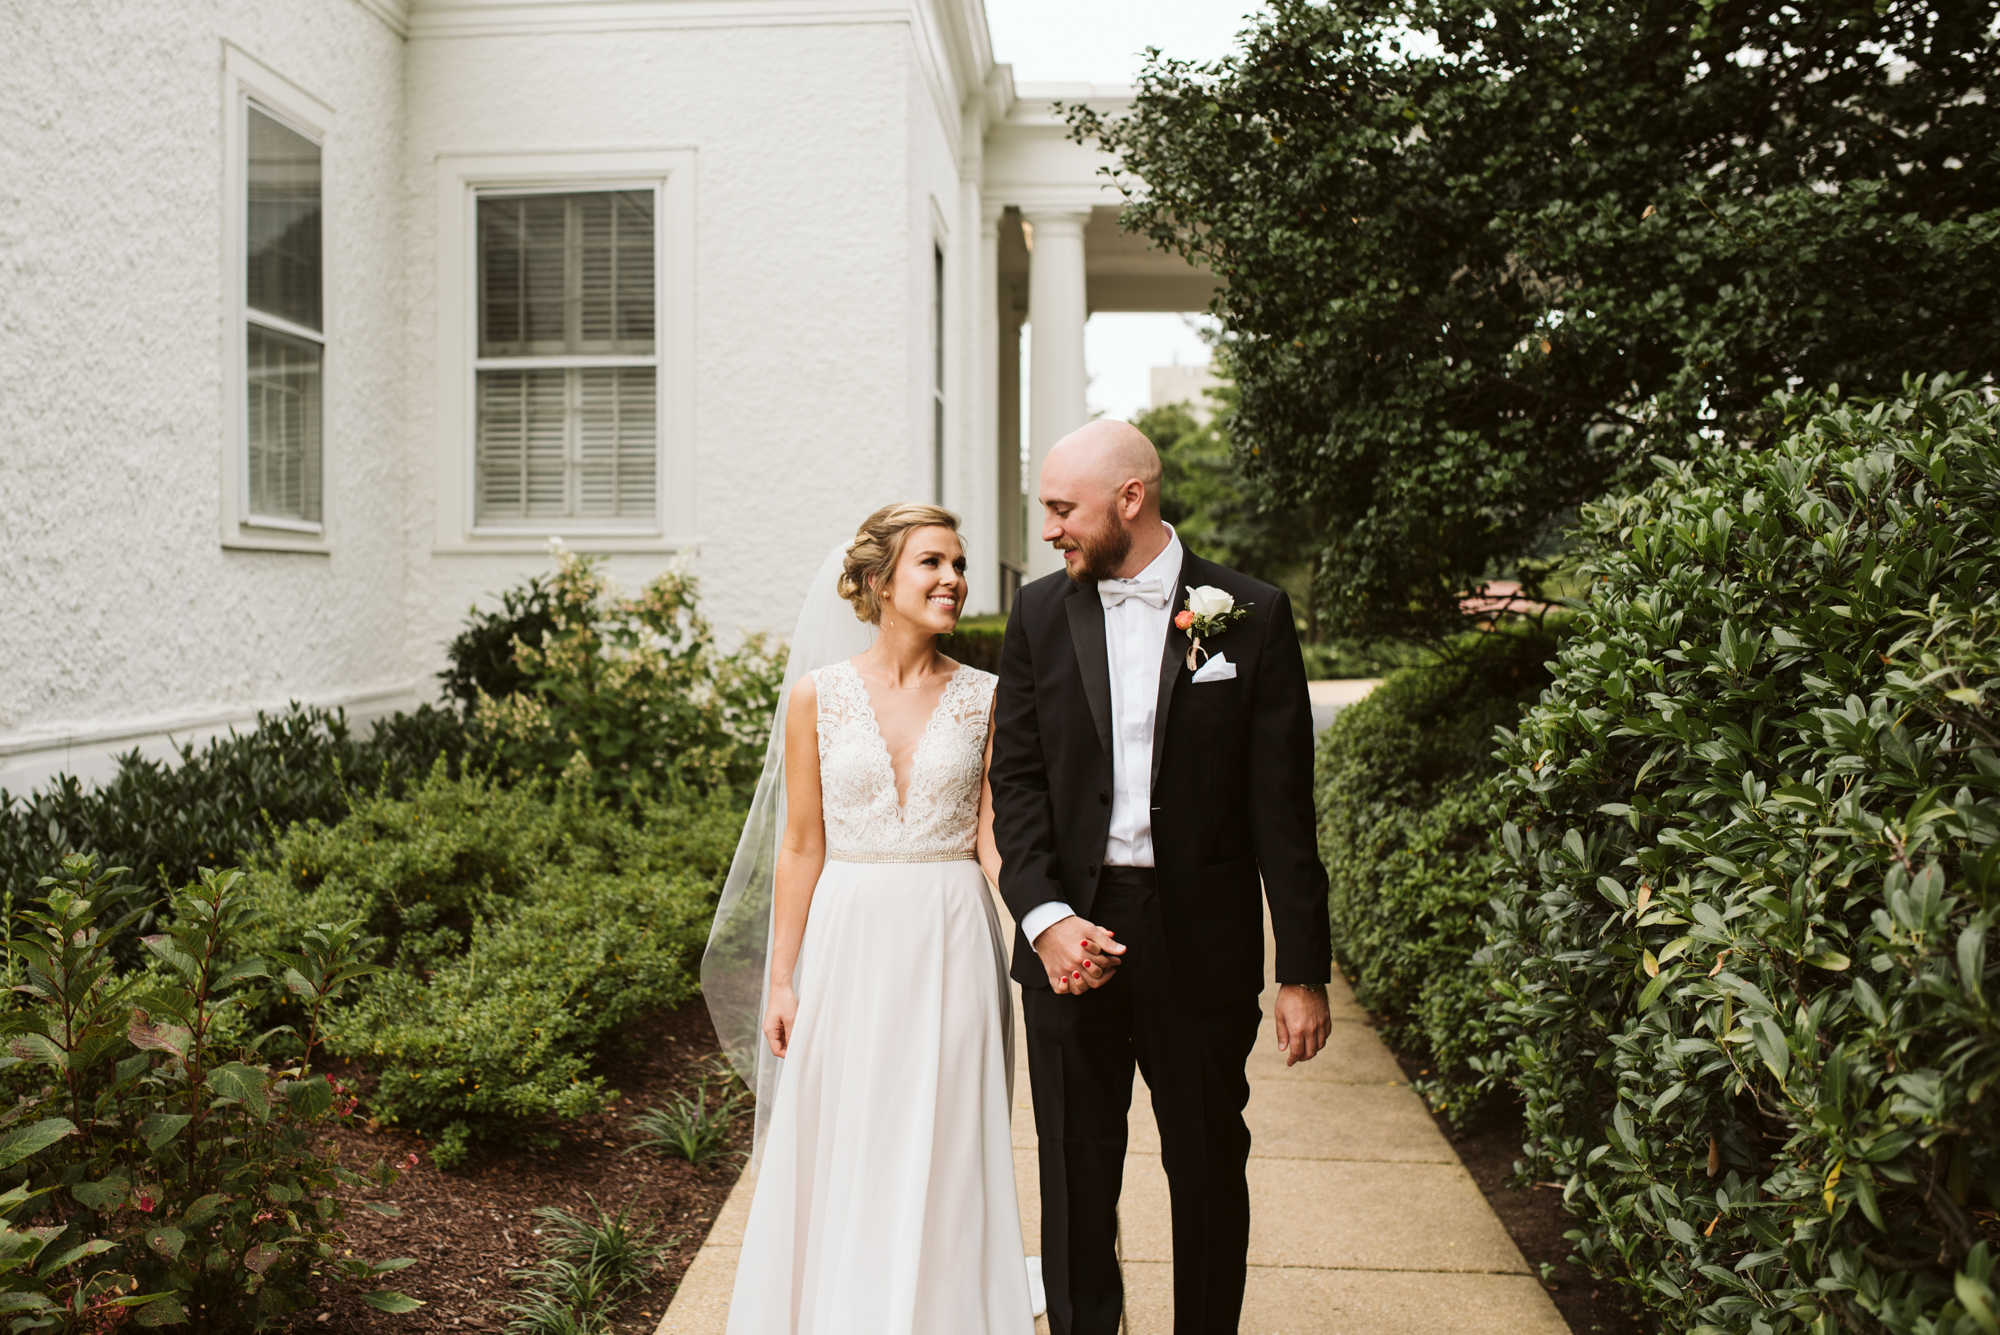 Elegant, Columbia Country Club, Chevy Chase Maryland, Baltimore Wedding Photographer, Classic, Traditional, Bride and Groom Holding Hands Walking, First Look Photo, BHLDN, Hugo Boss